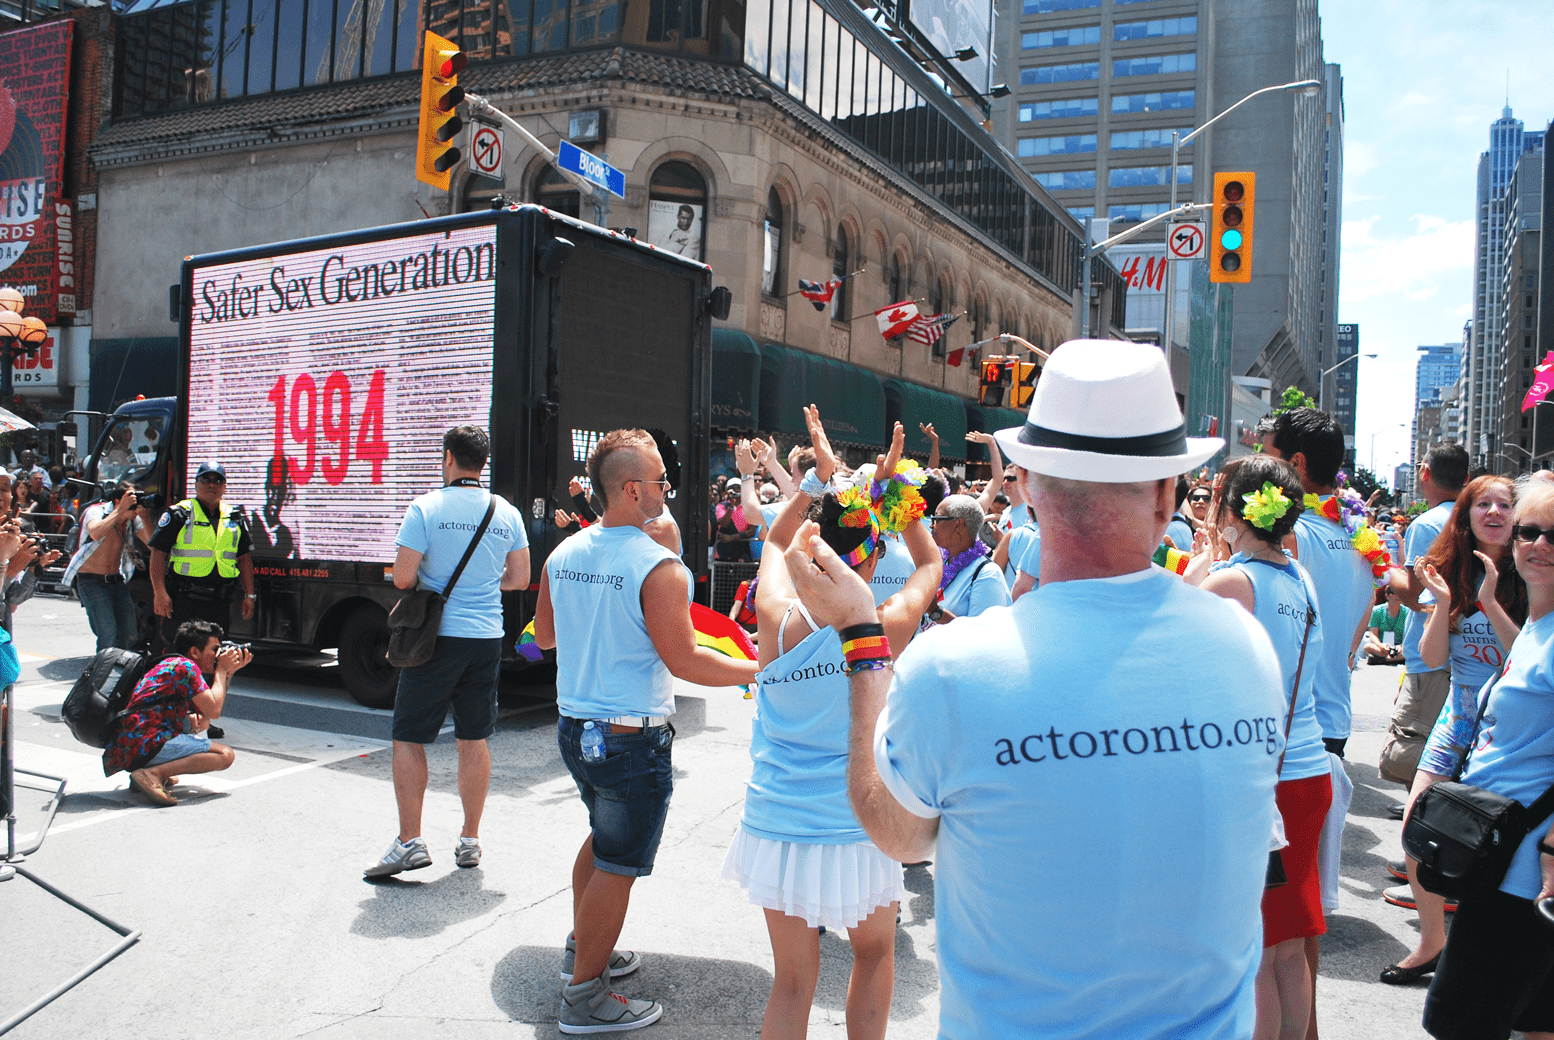 Digital Ad Truck: Aids Committee Toronto